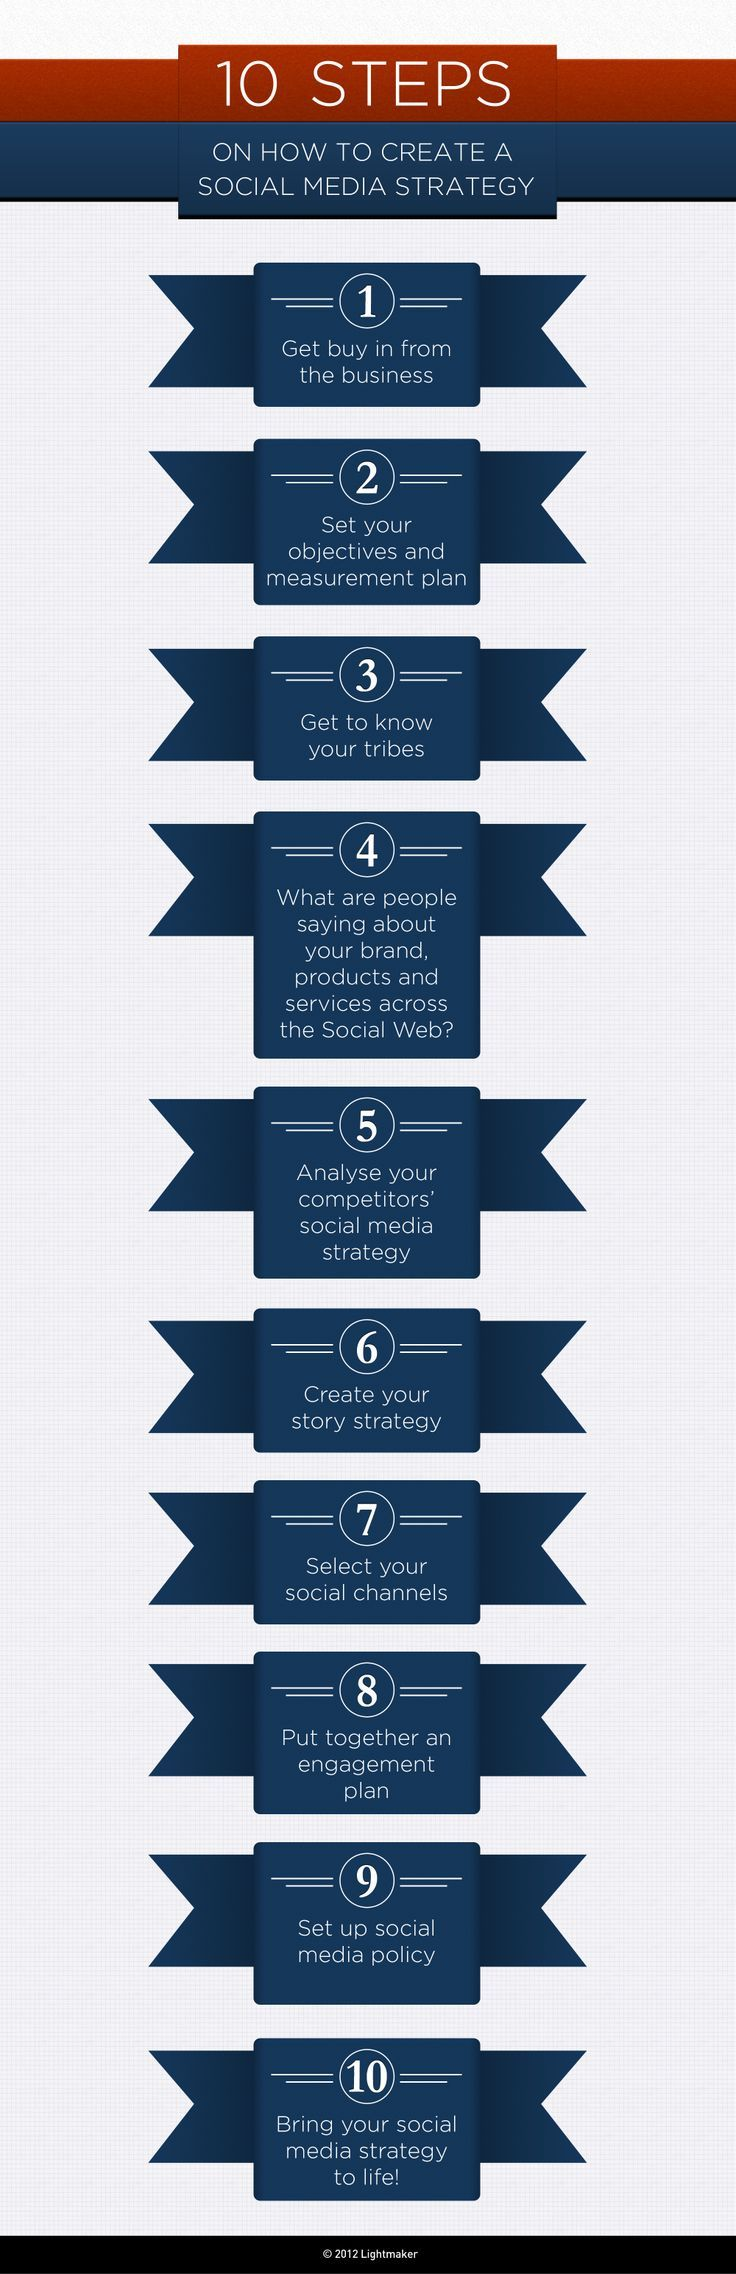 How to Implement a #SocialMedia Strategy